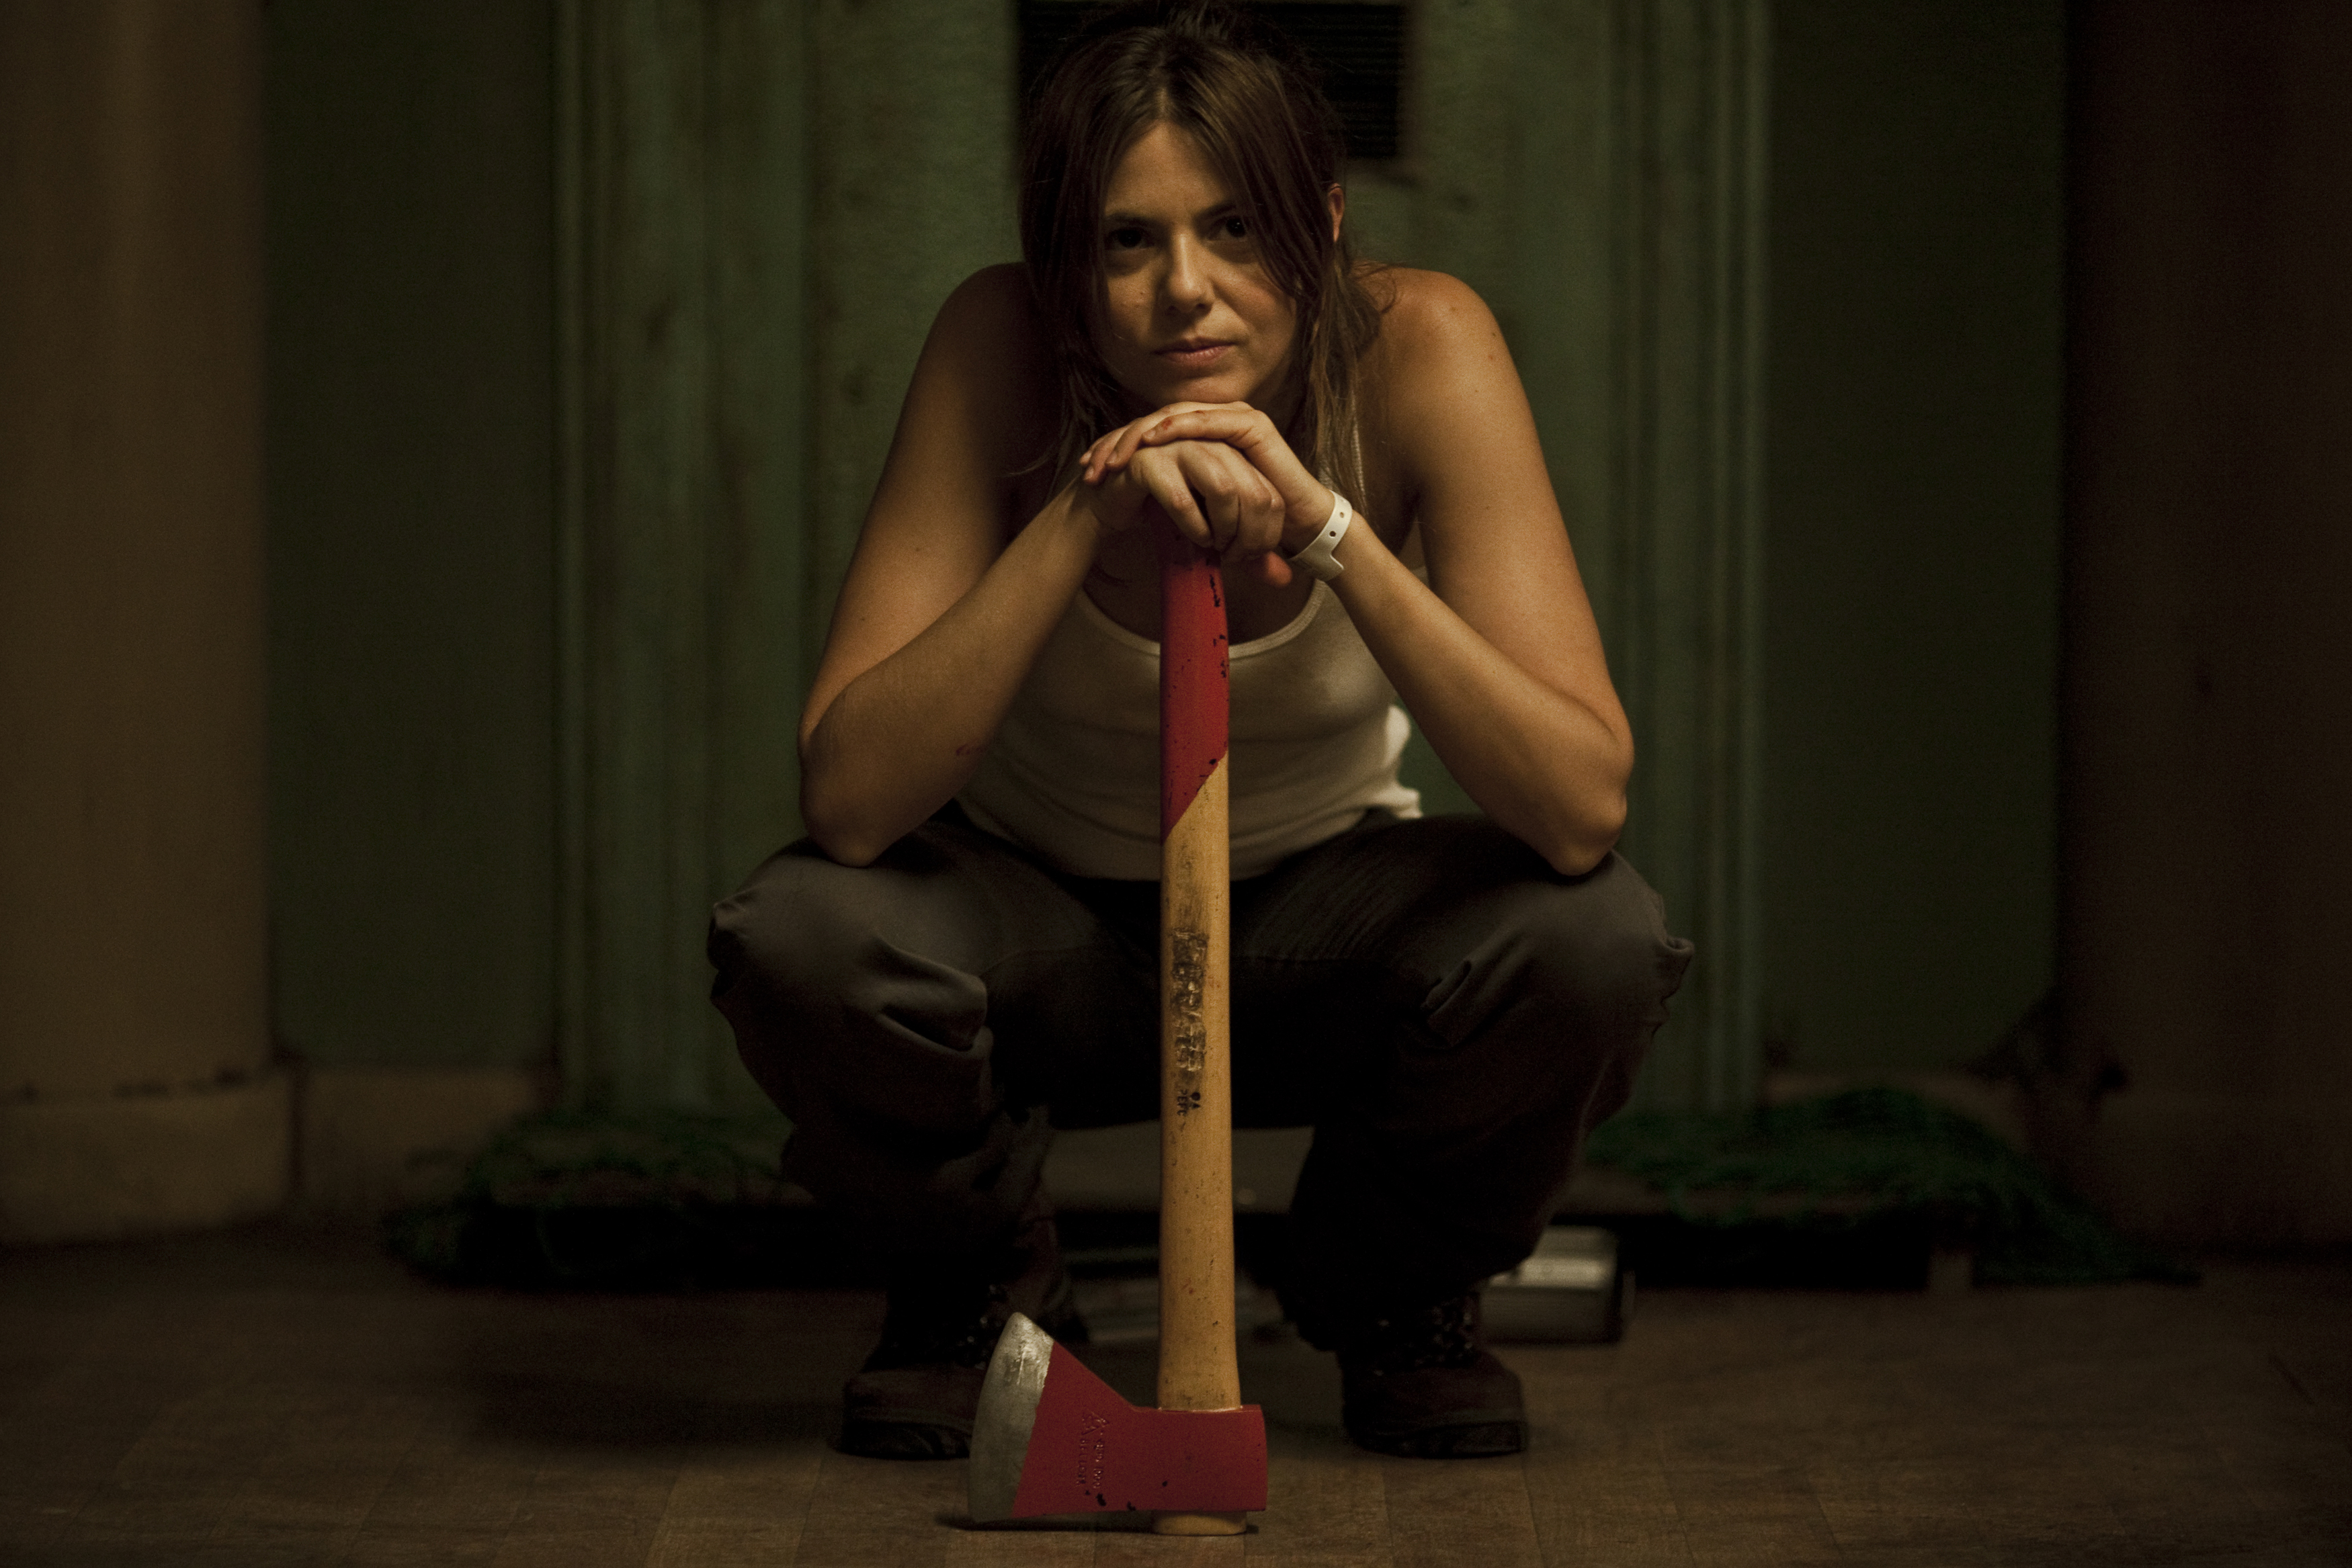 Top Ten Genre Movies of TIFF 2014 - [Rec] 4: Apocalypse